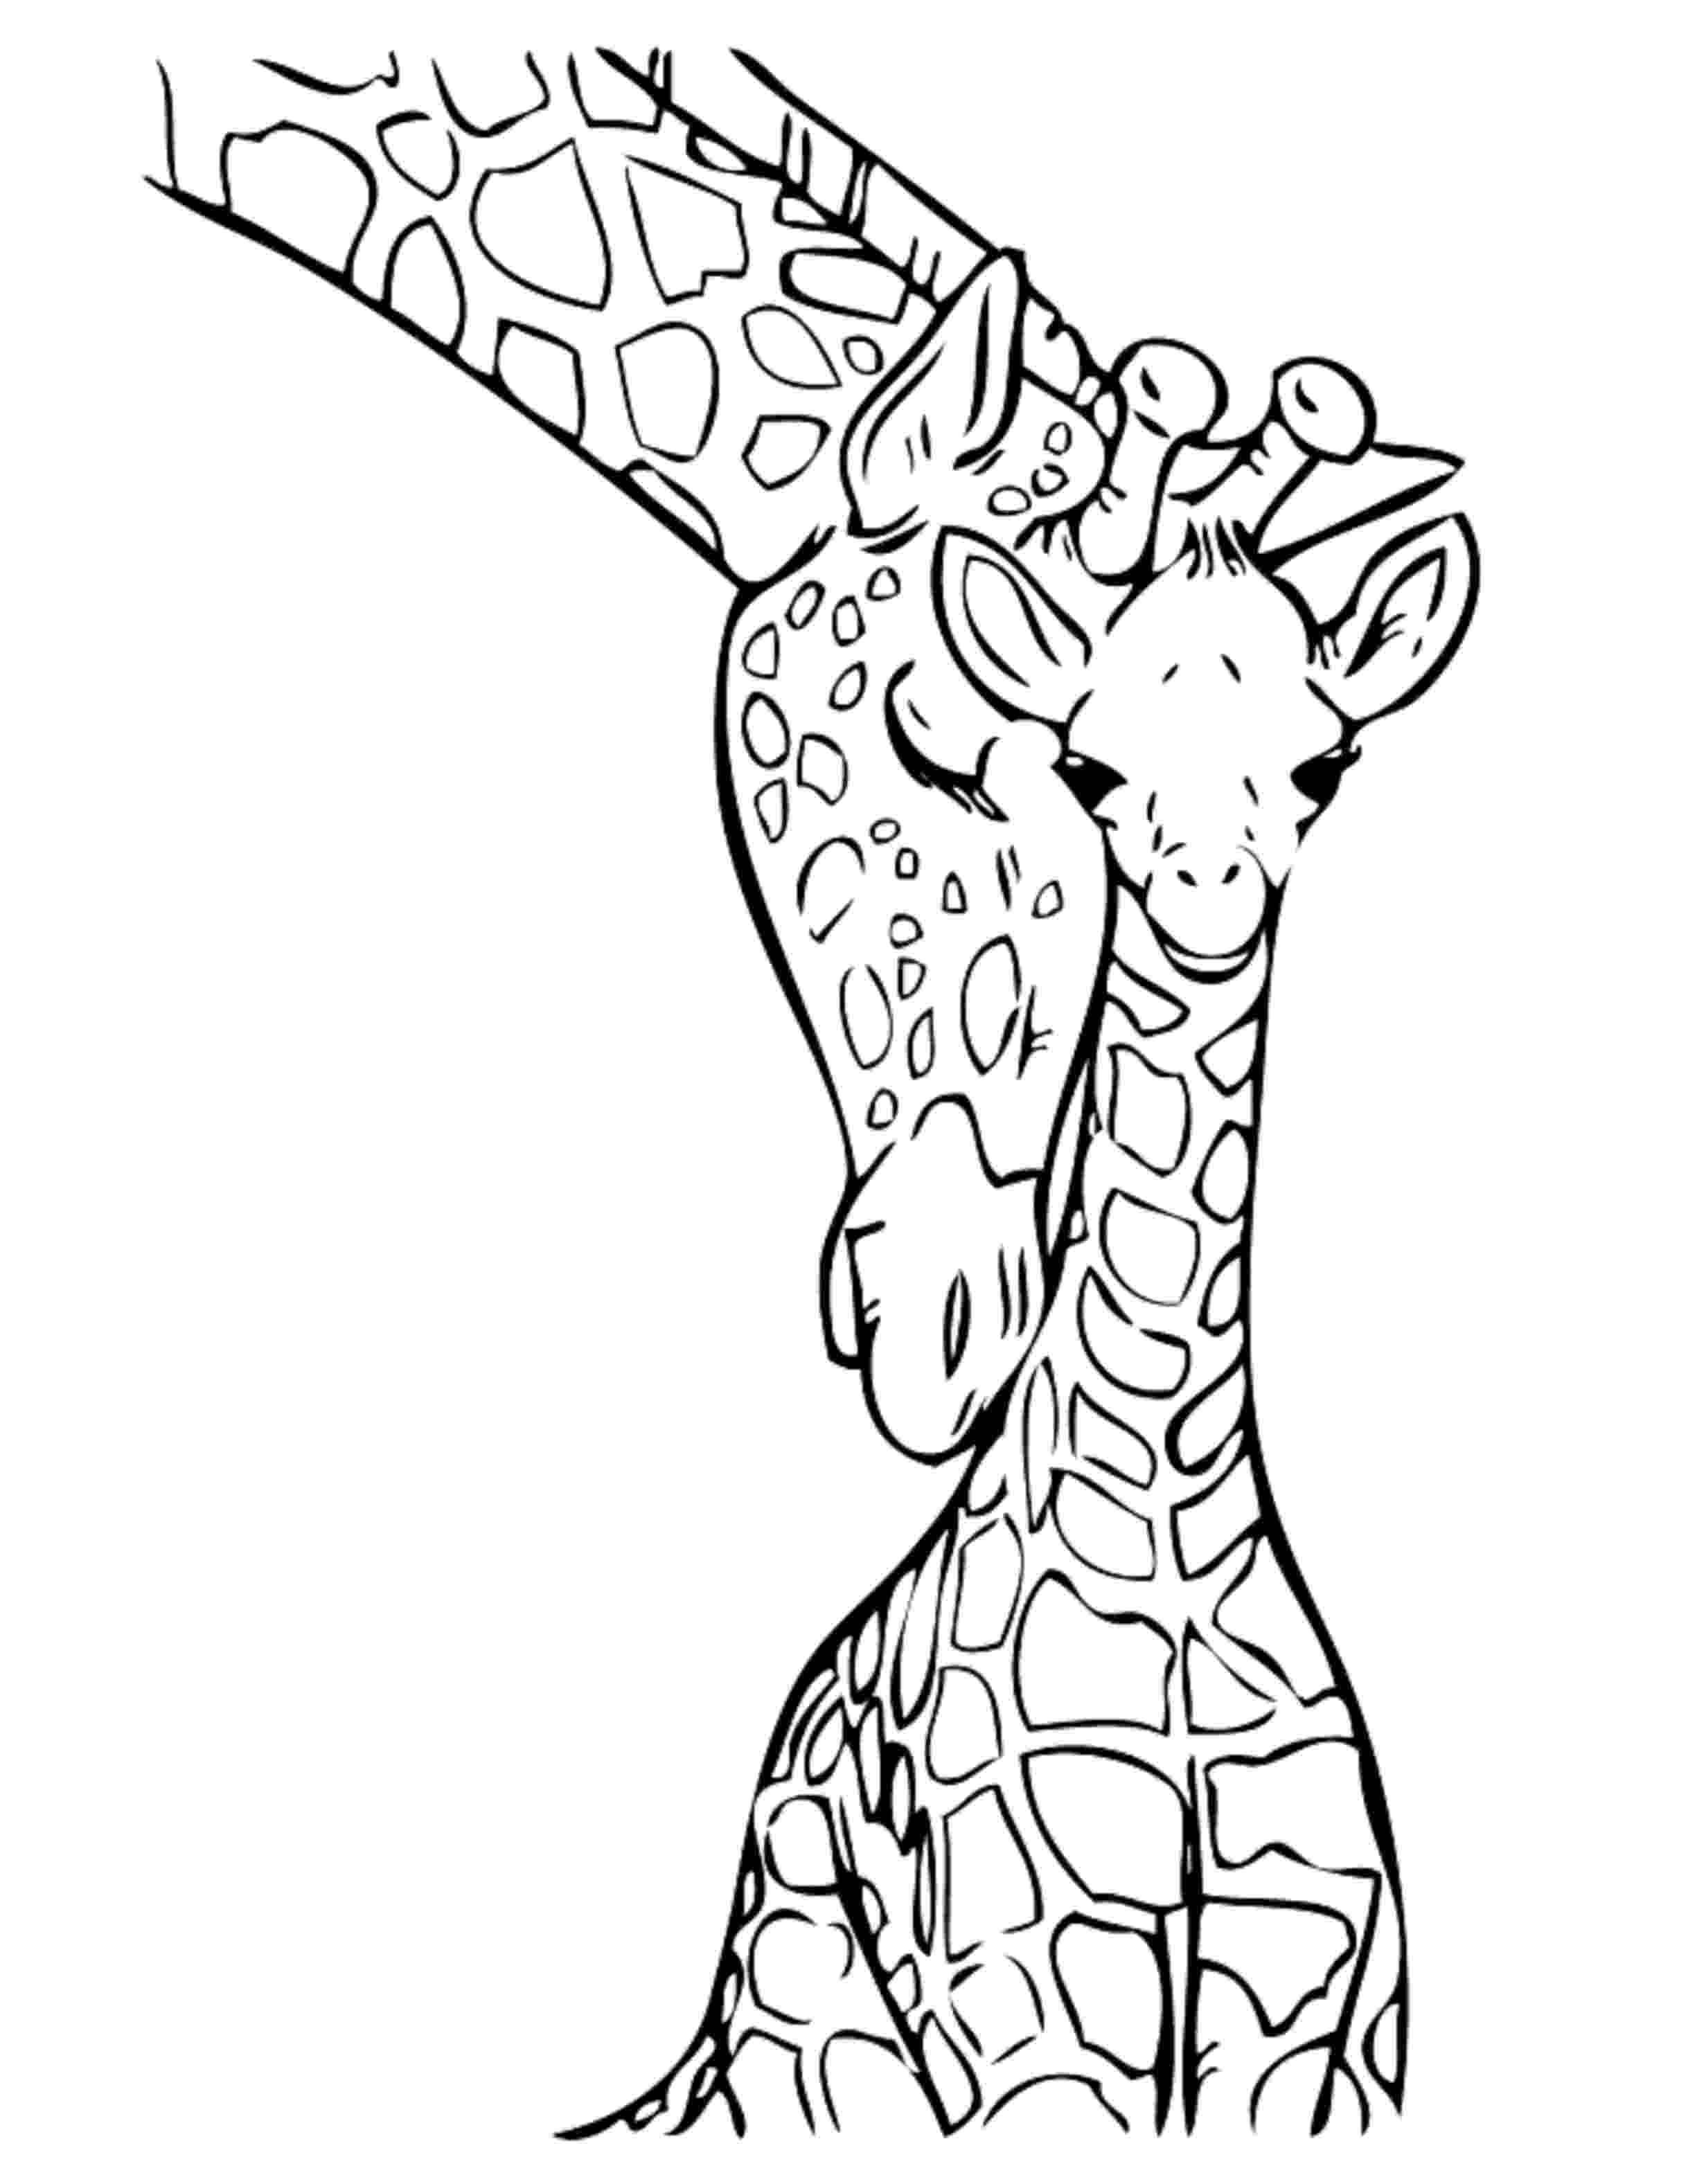 giraffe coloring pages realistic giraffe coloring page free printable coloring coloring giraffe pages